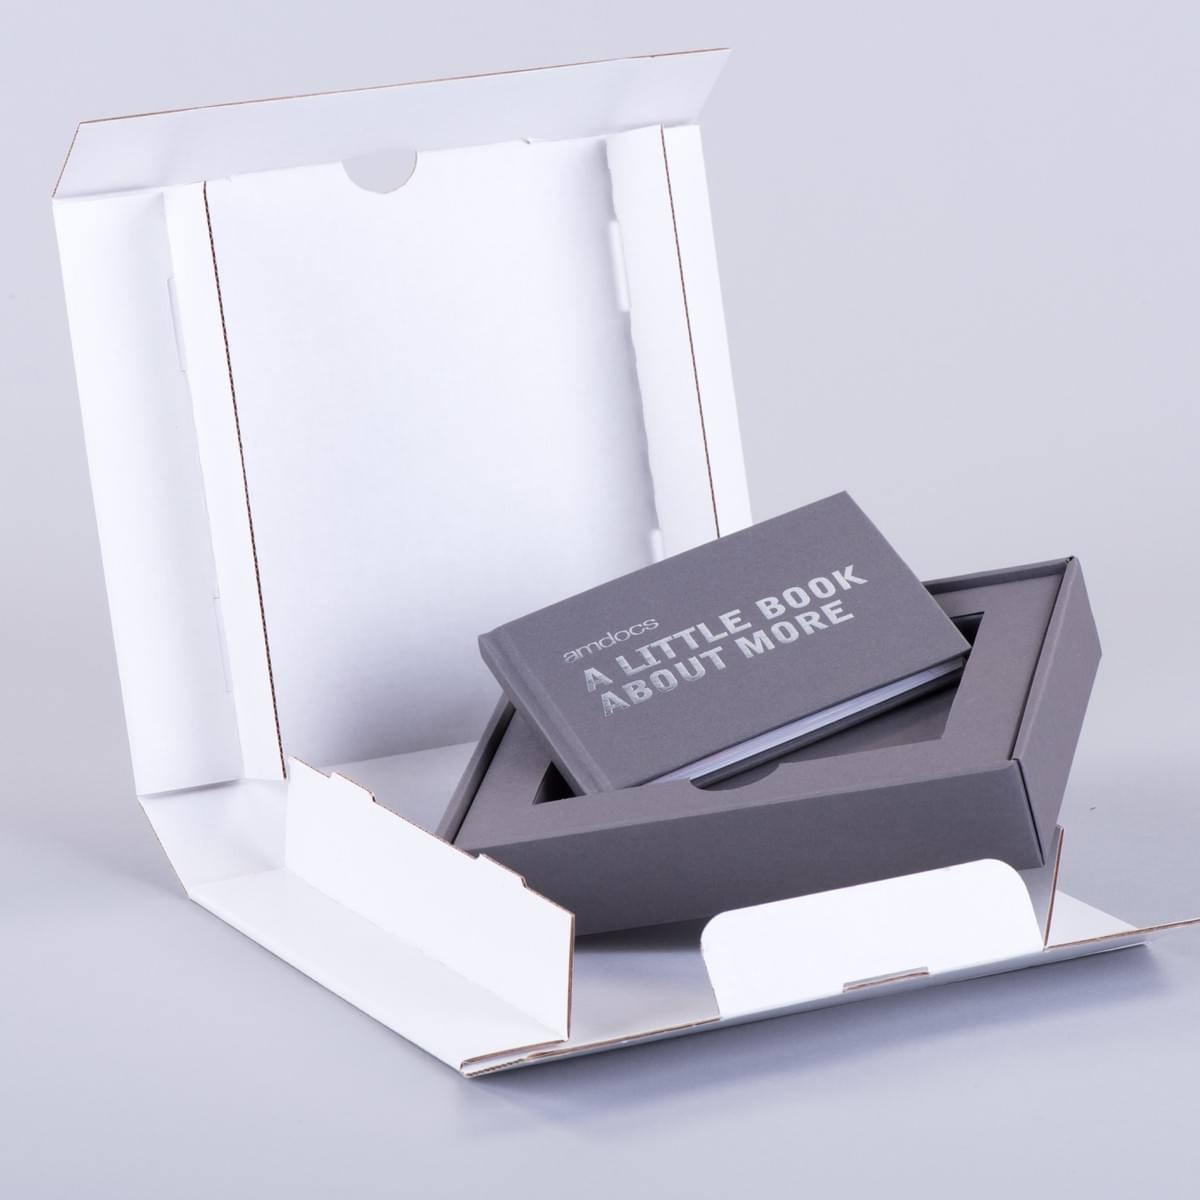 Create-This provides design and production of cardboard engineered products  - direct mail  presentation boxes and point of sale